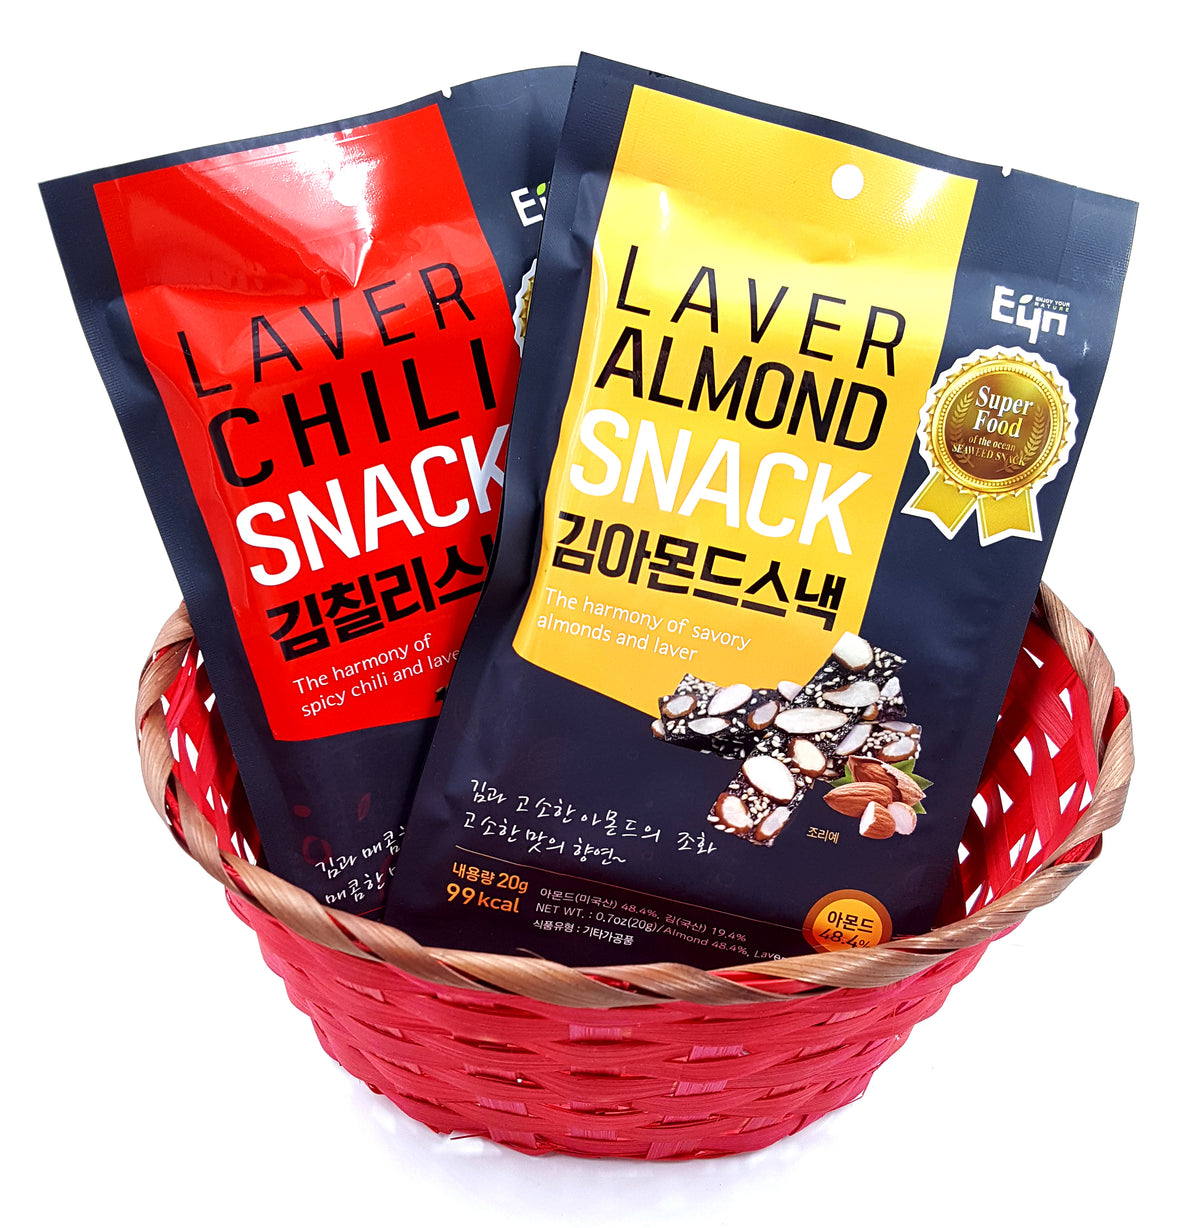 EYN Seaweed Snack combination- 1 of each flavor